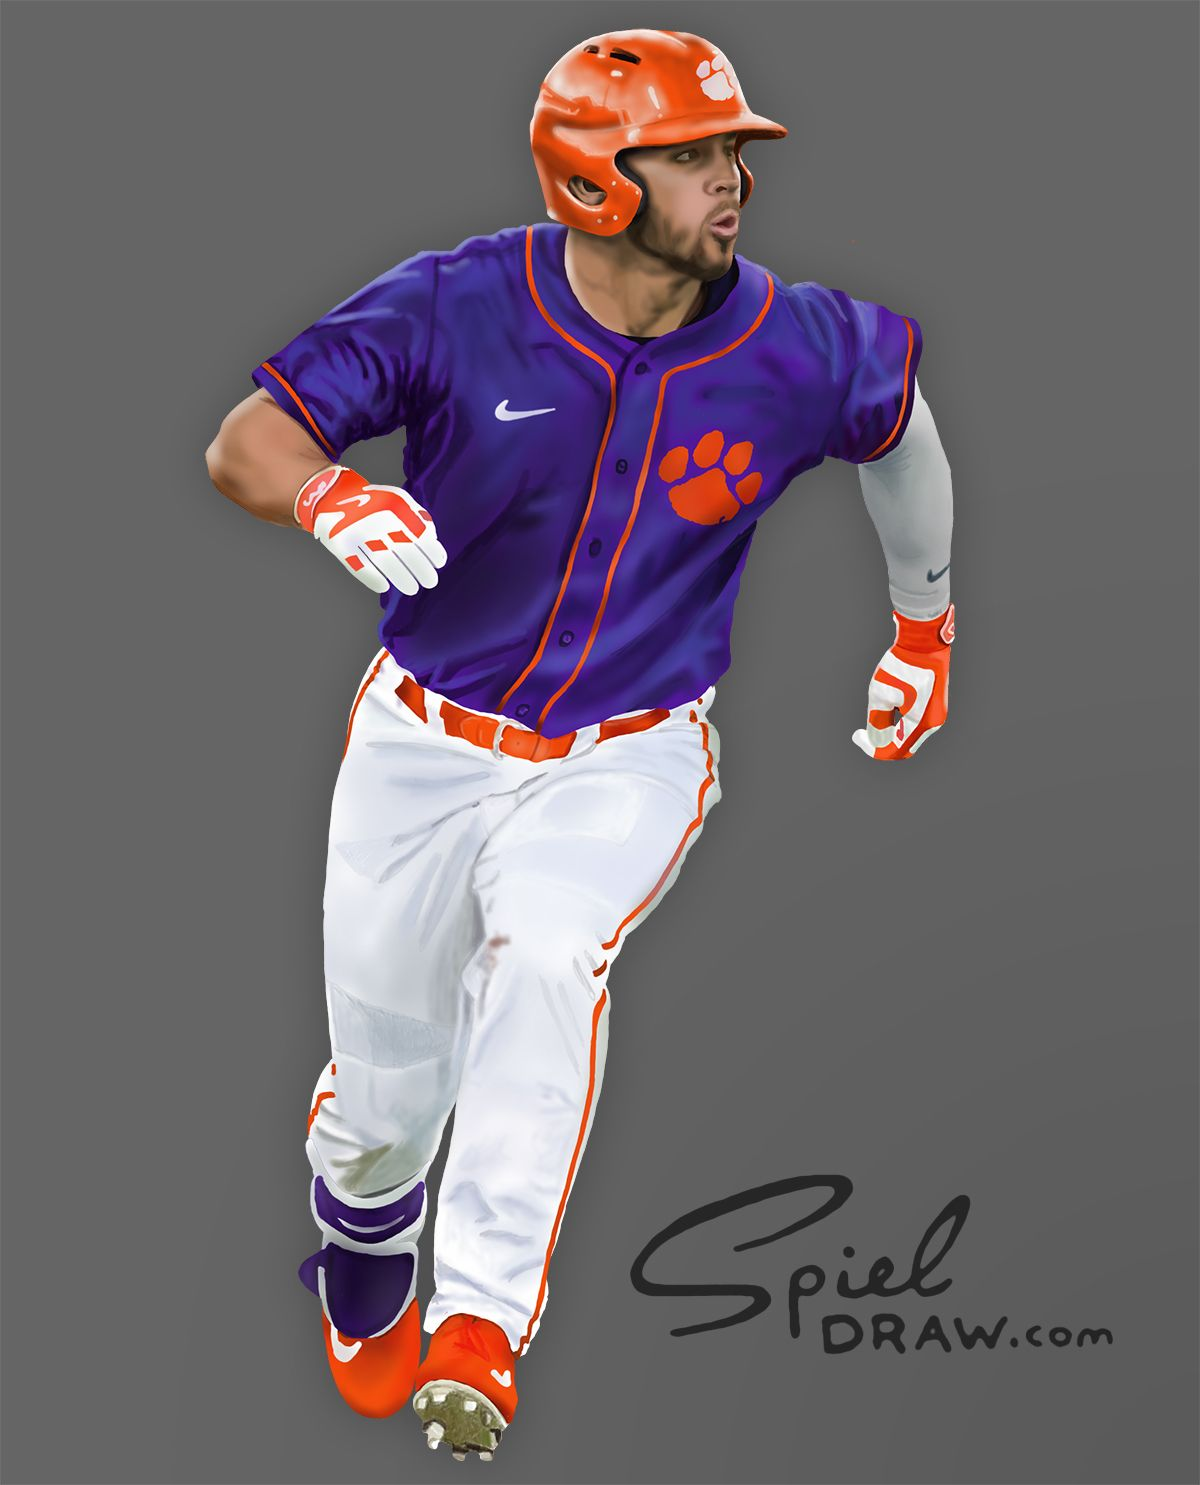 b37c7d709 Digital painting of Clemson first baseman Andrew Cox. Created with  Procreate and Photoshop.